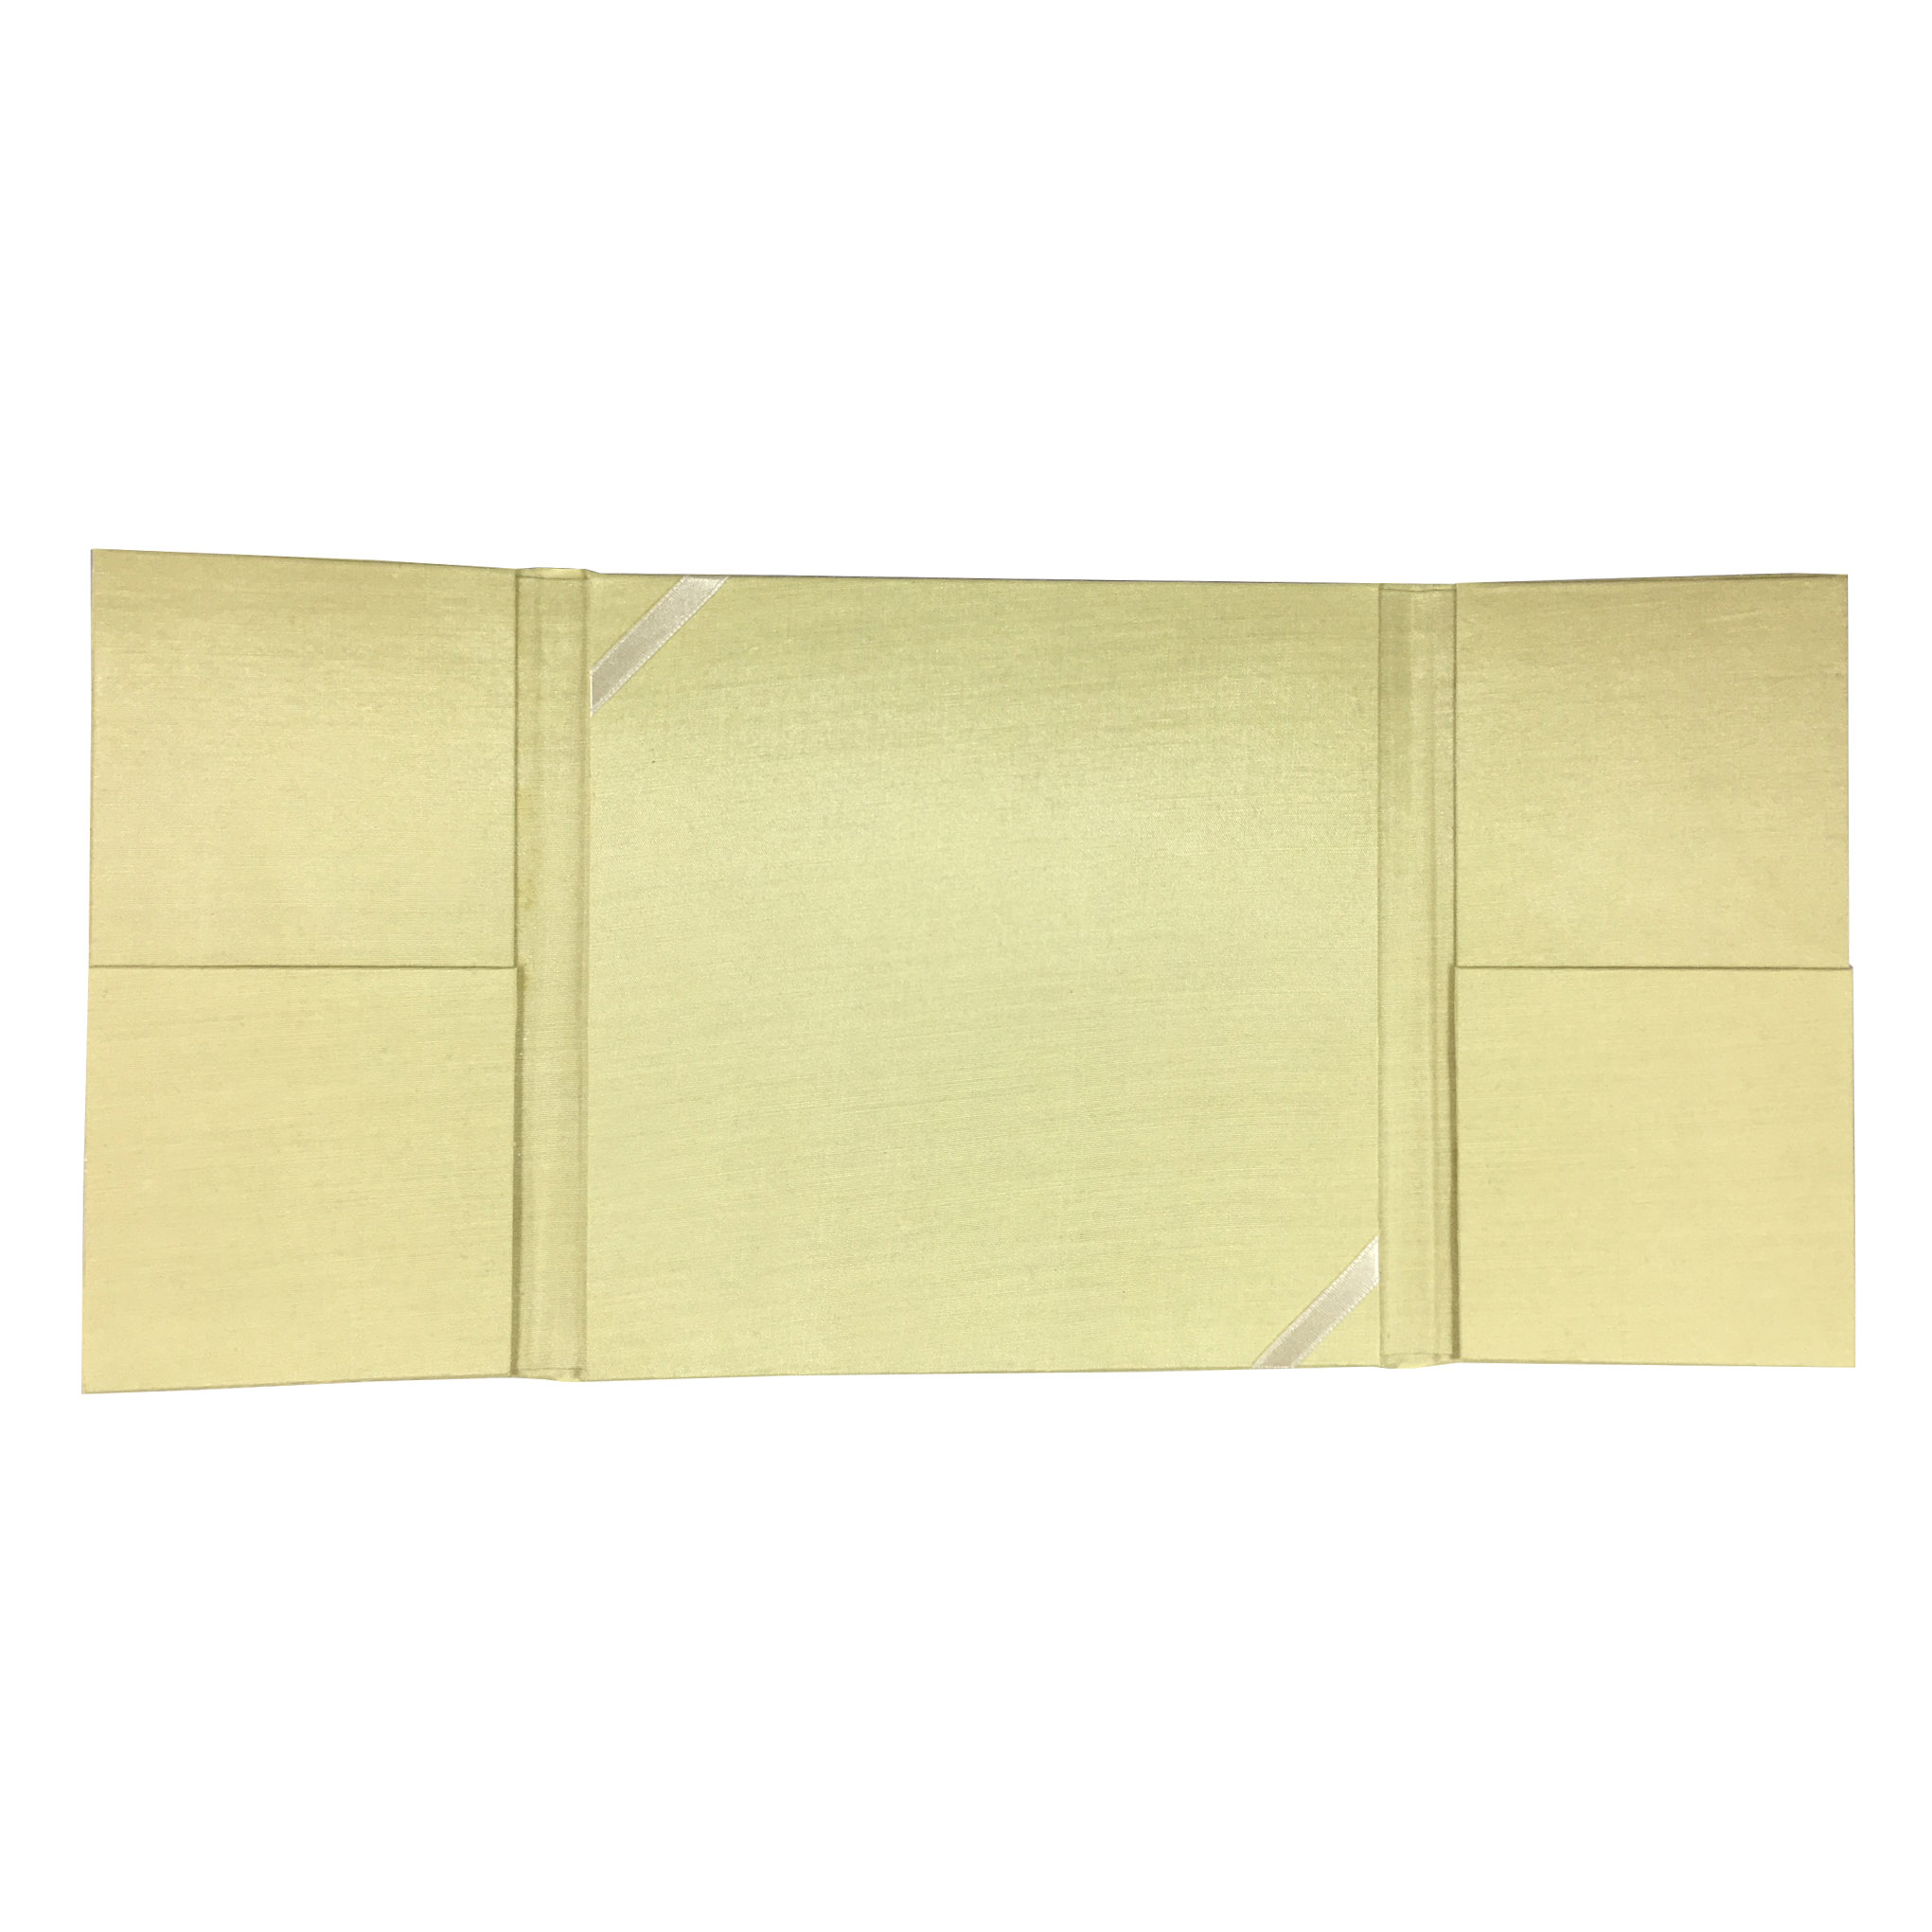 Pastel yellow wedding invitation pocket folder